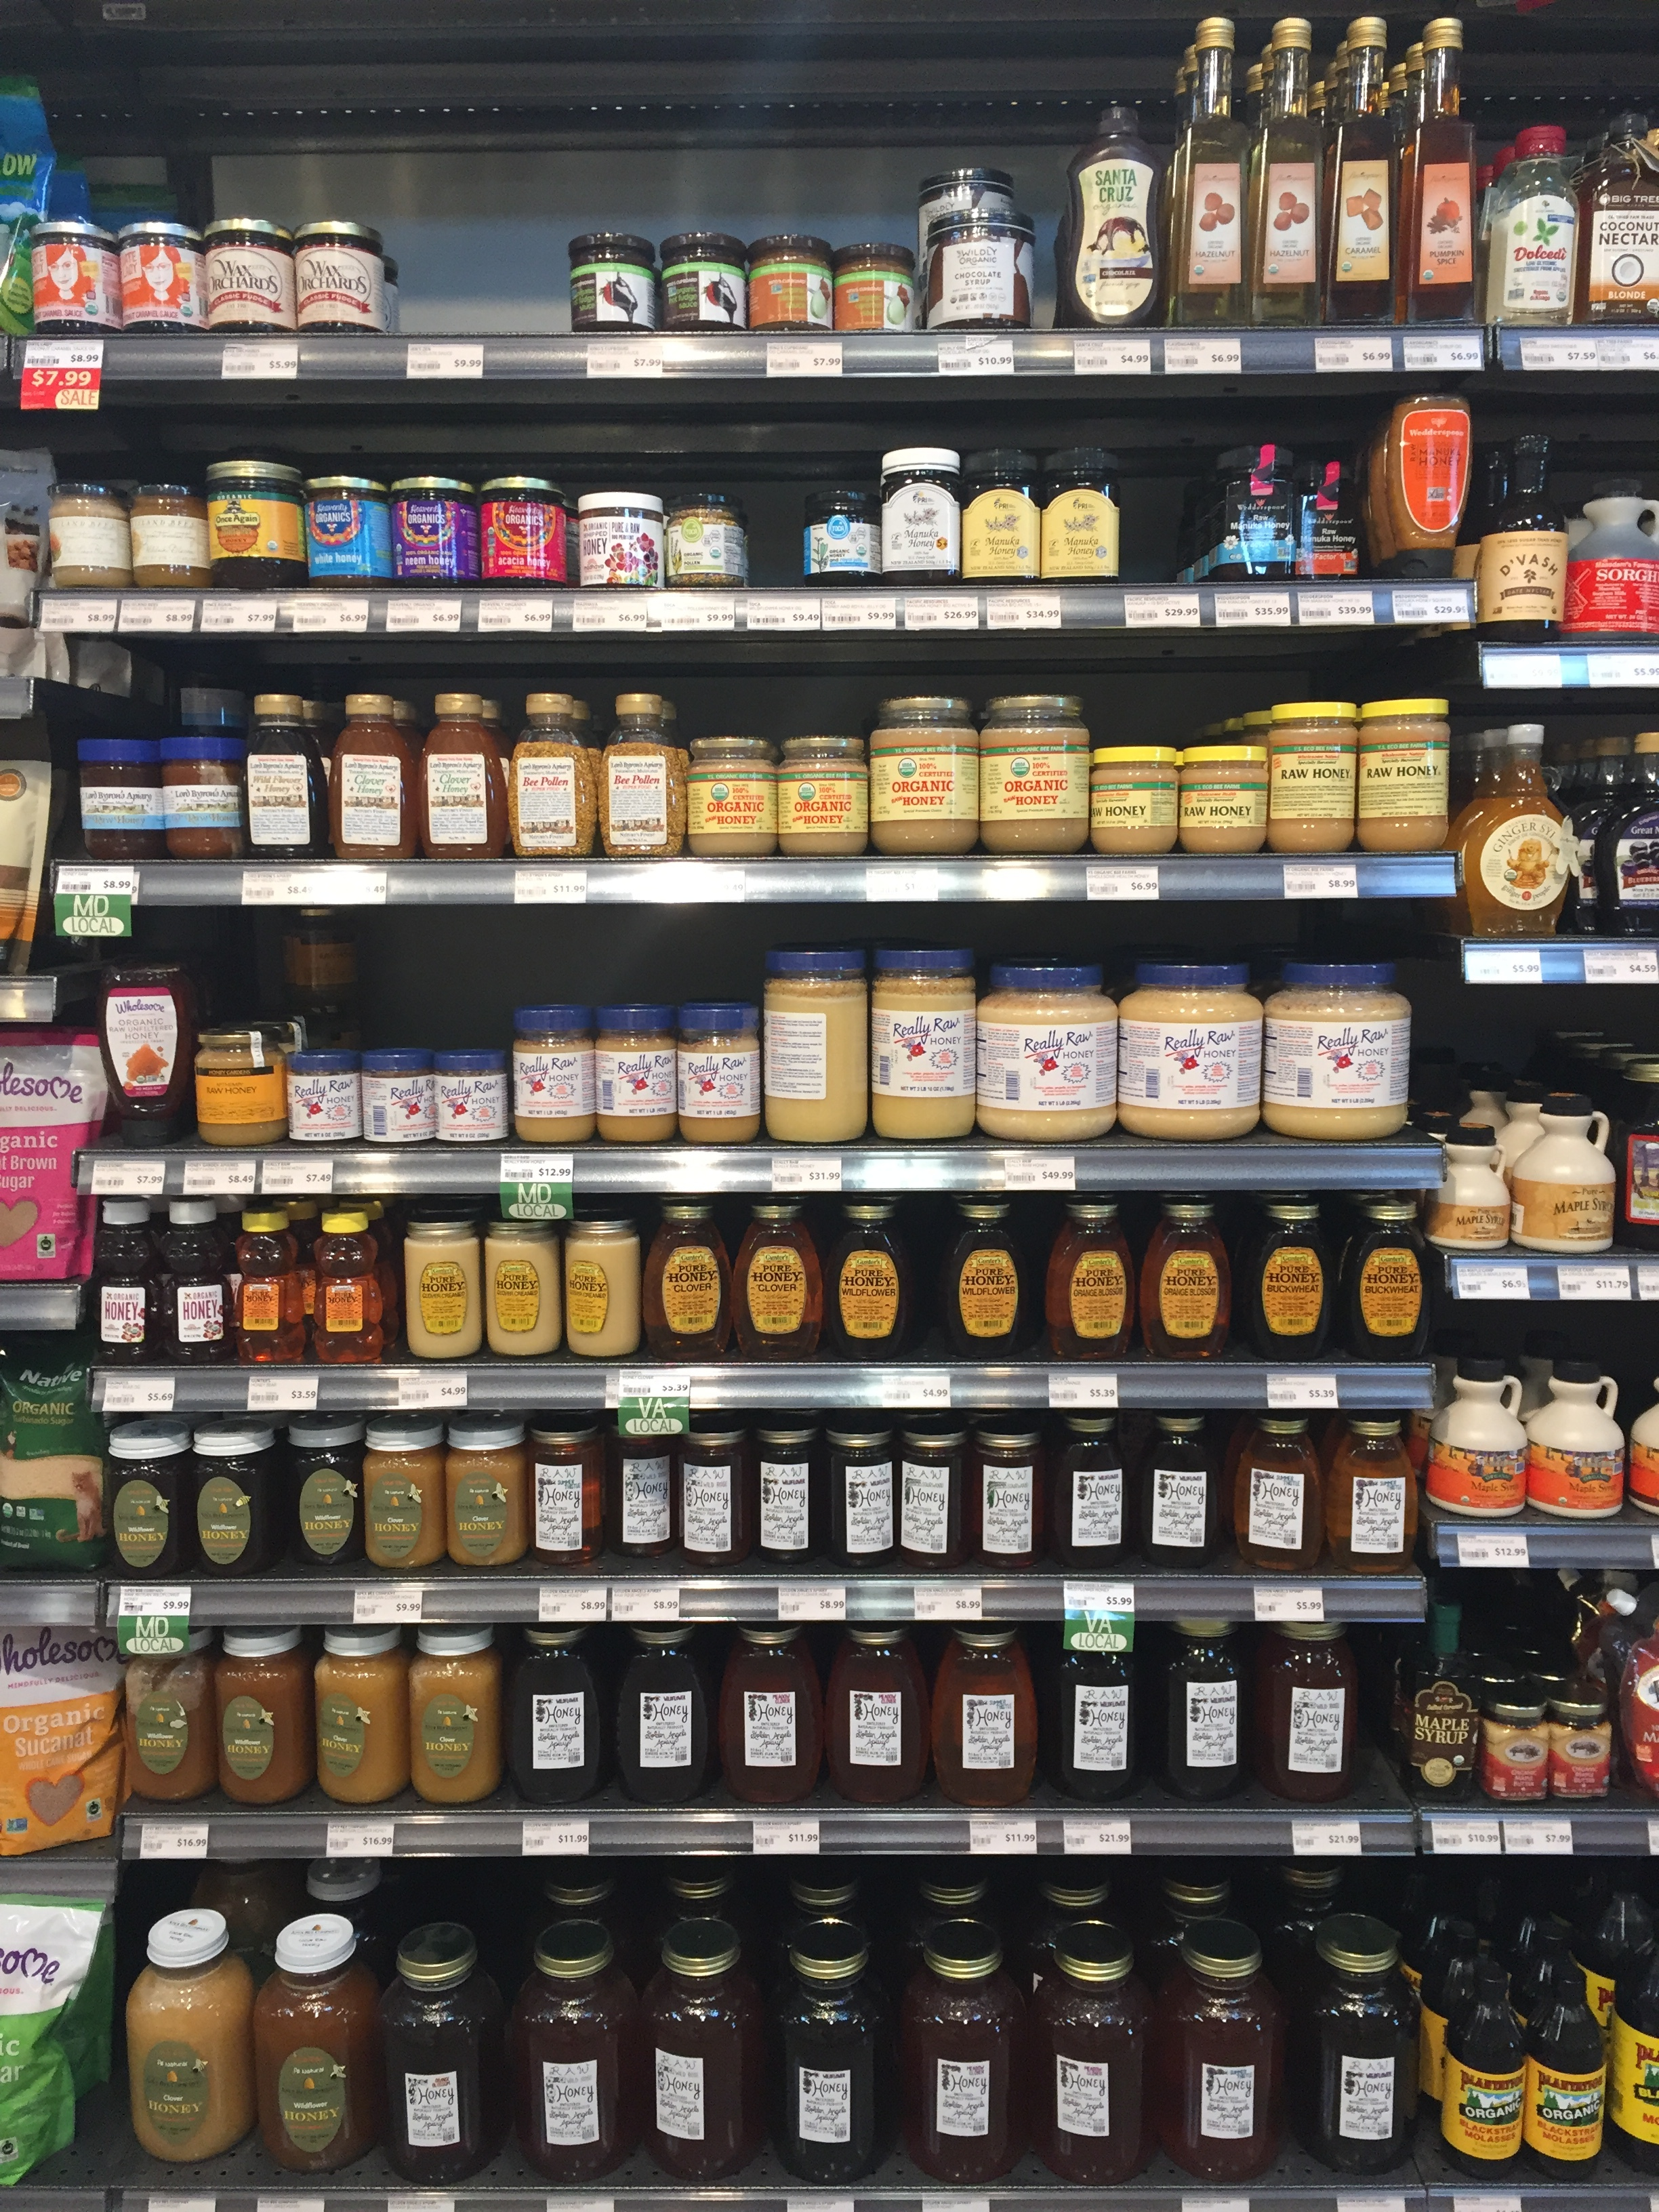 This store has a wide selection of honey.